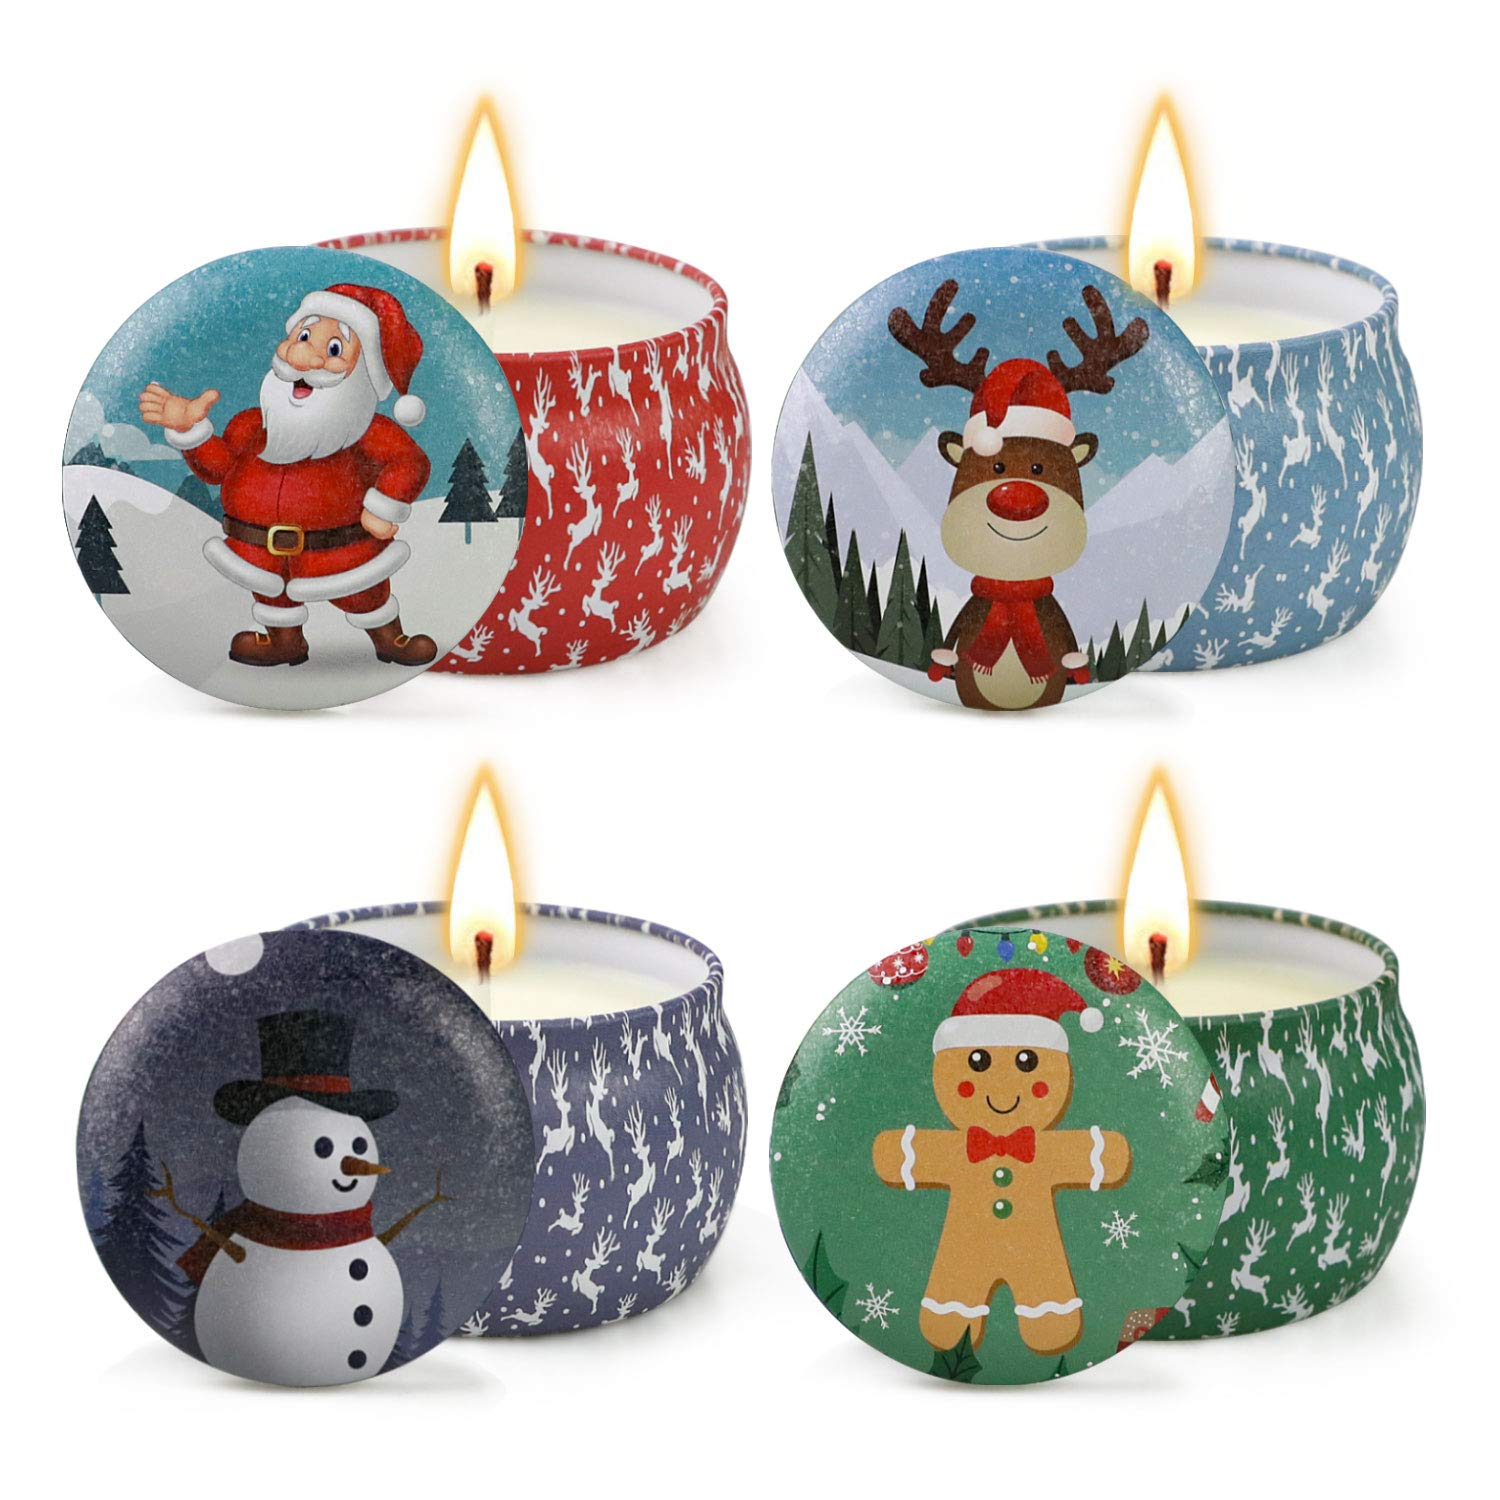 ALYSI Scented Candles Christmas Set Gift of 4 with Fir, Lavender, Cookies, Apple,Natural Soy Wax Portable Travel Tin Candle by ALYSI